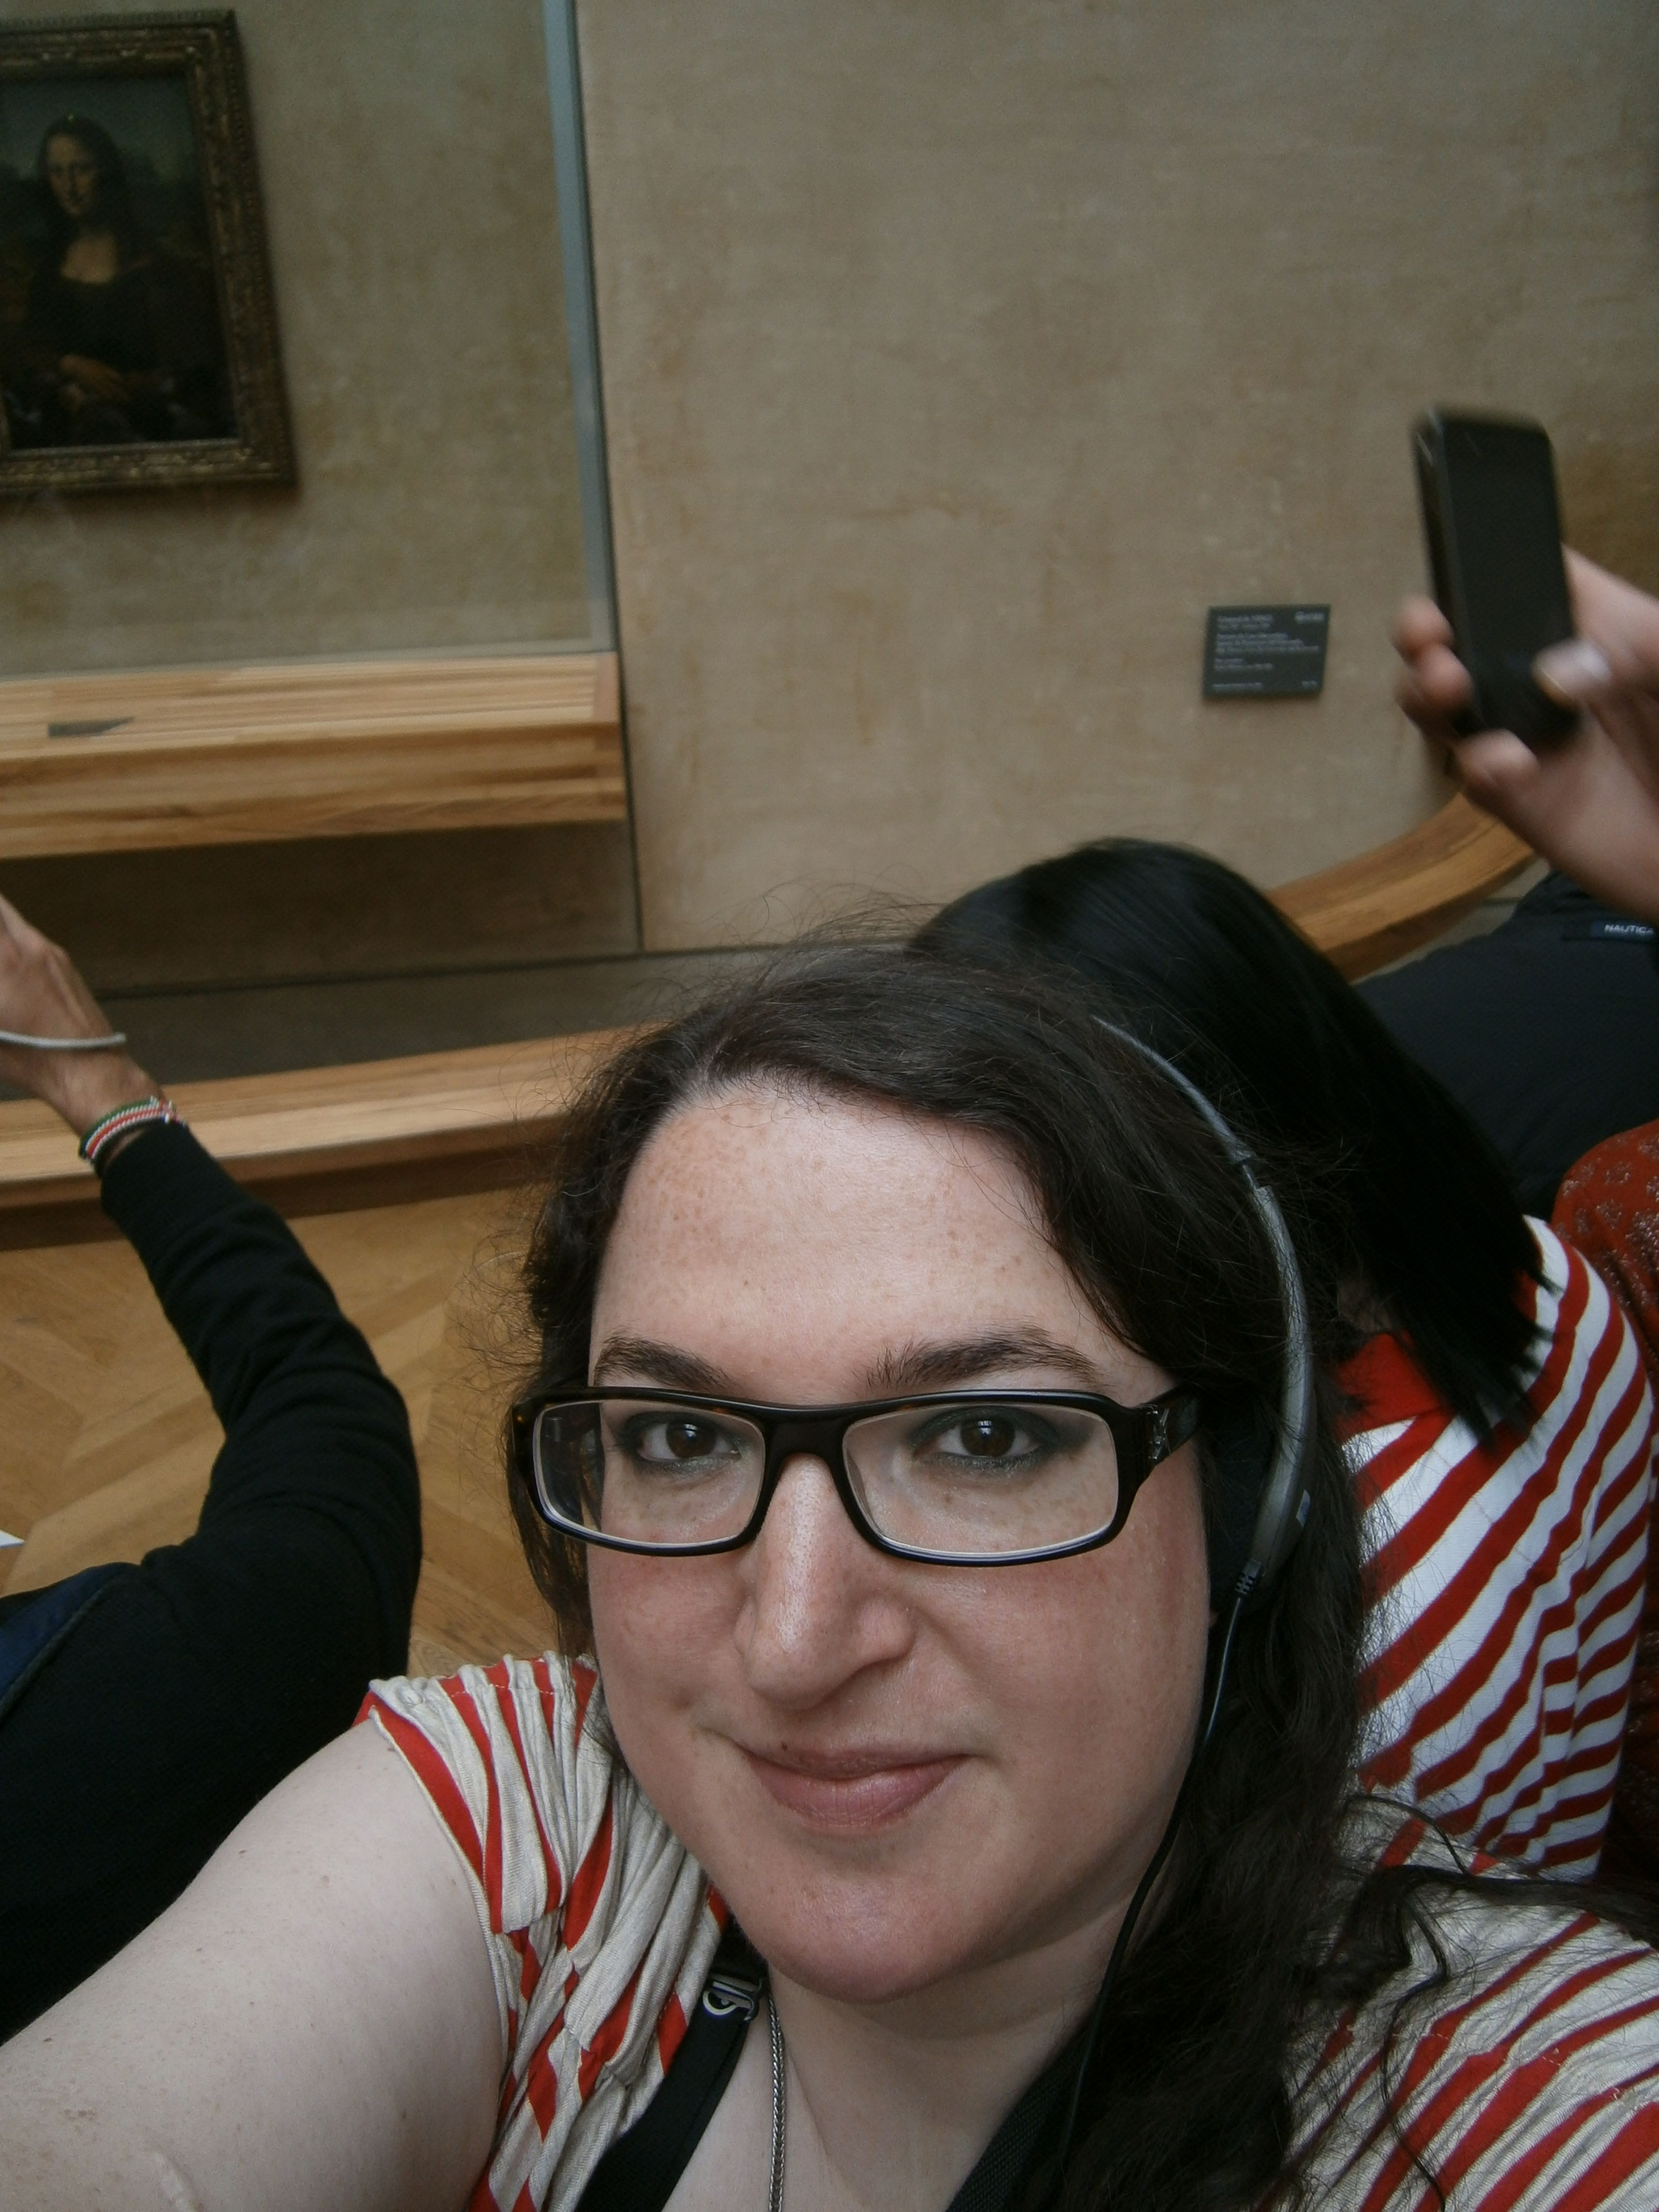 Selfie with Mona Lisa. It's tough to get close, as my face will tell you.